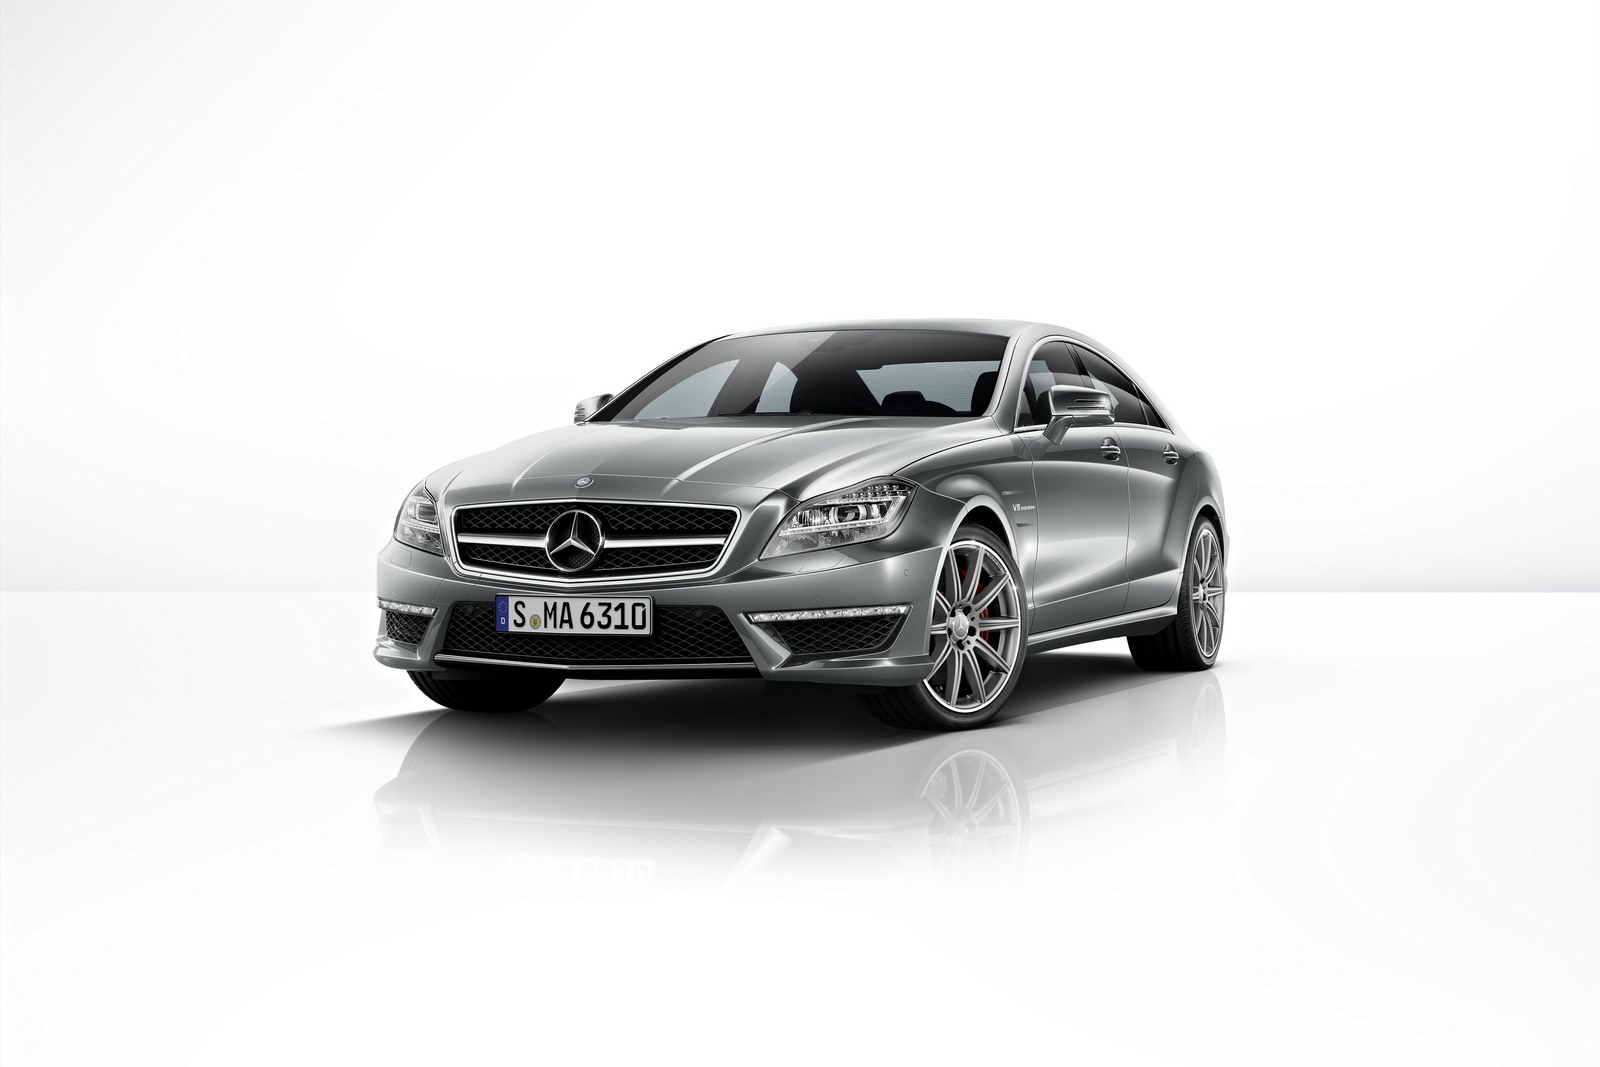 2014 mercedes cls 63 amg gets more power 4matic autoevolution. Black Bedroom Furniture Sets. Home Design Ideas